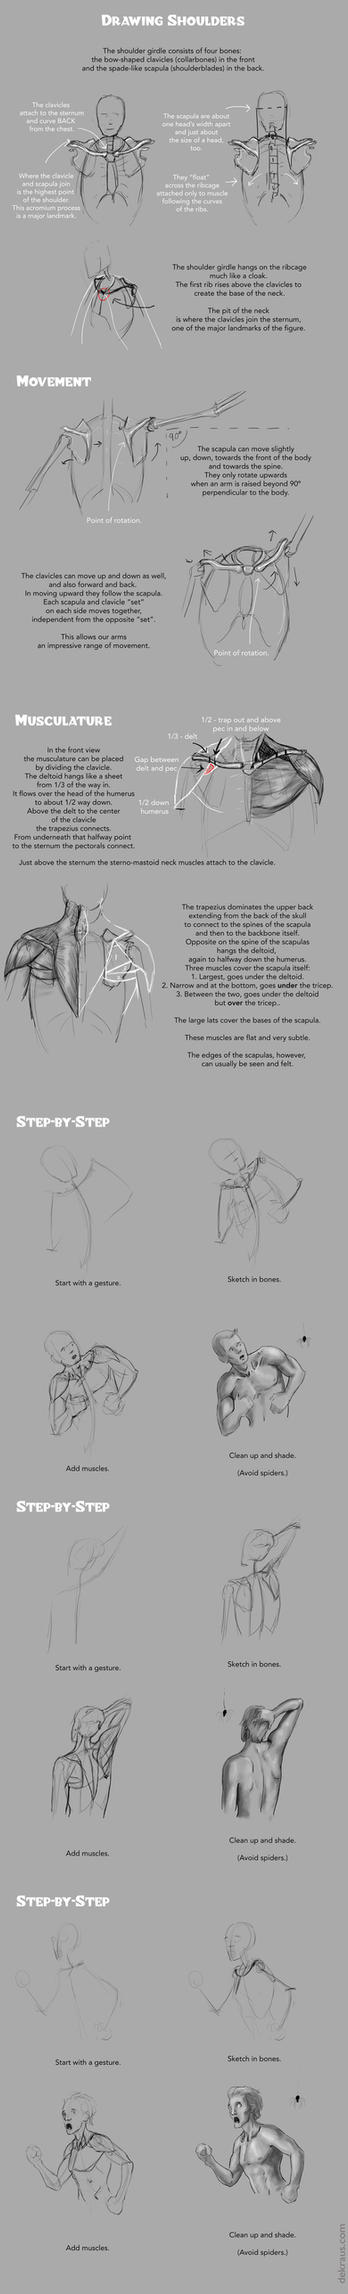 Drawing Shoulders Tutorial by banjodi